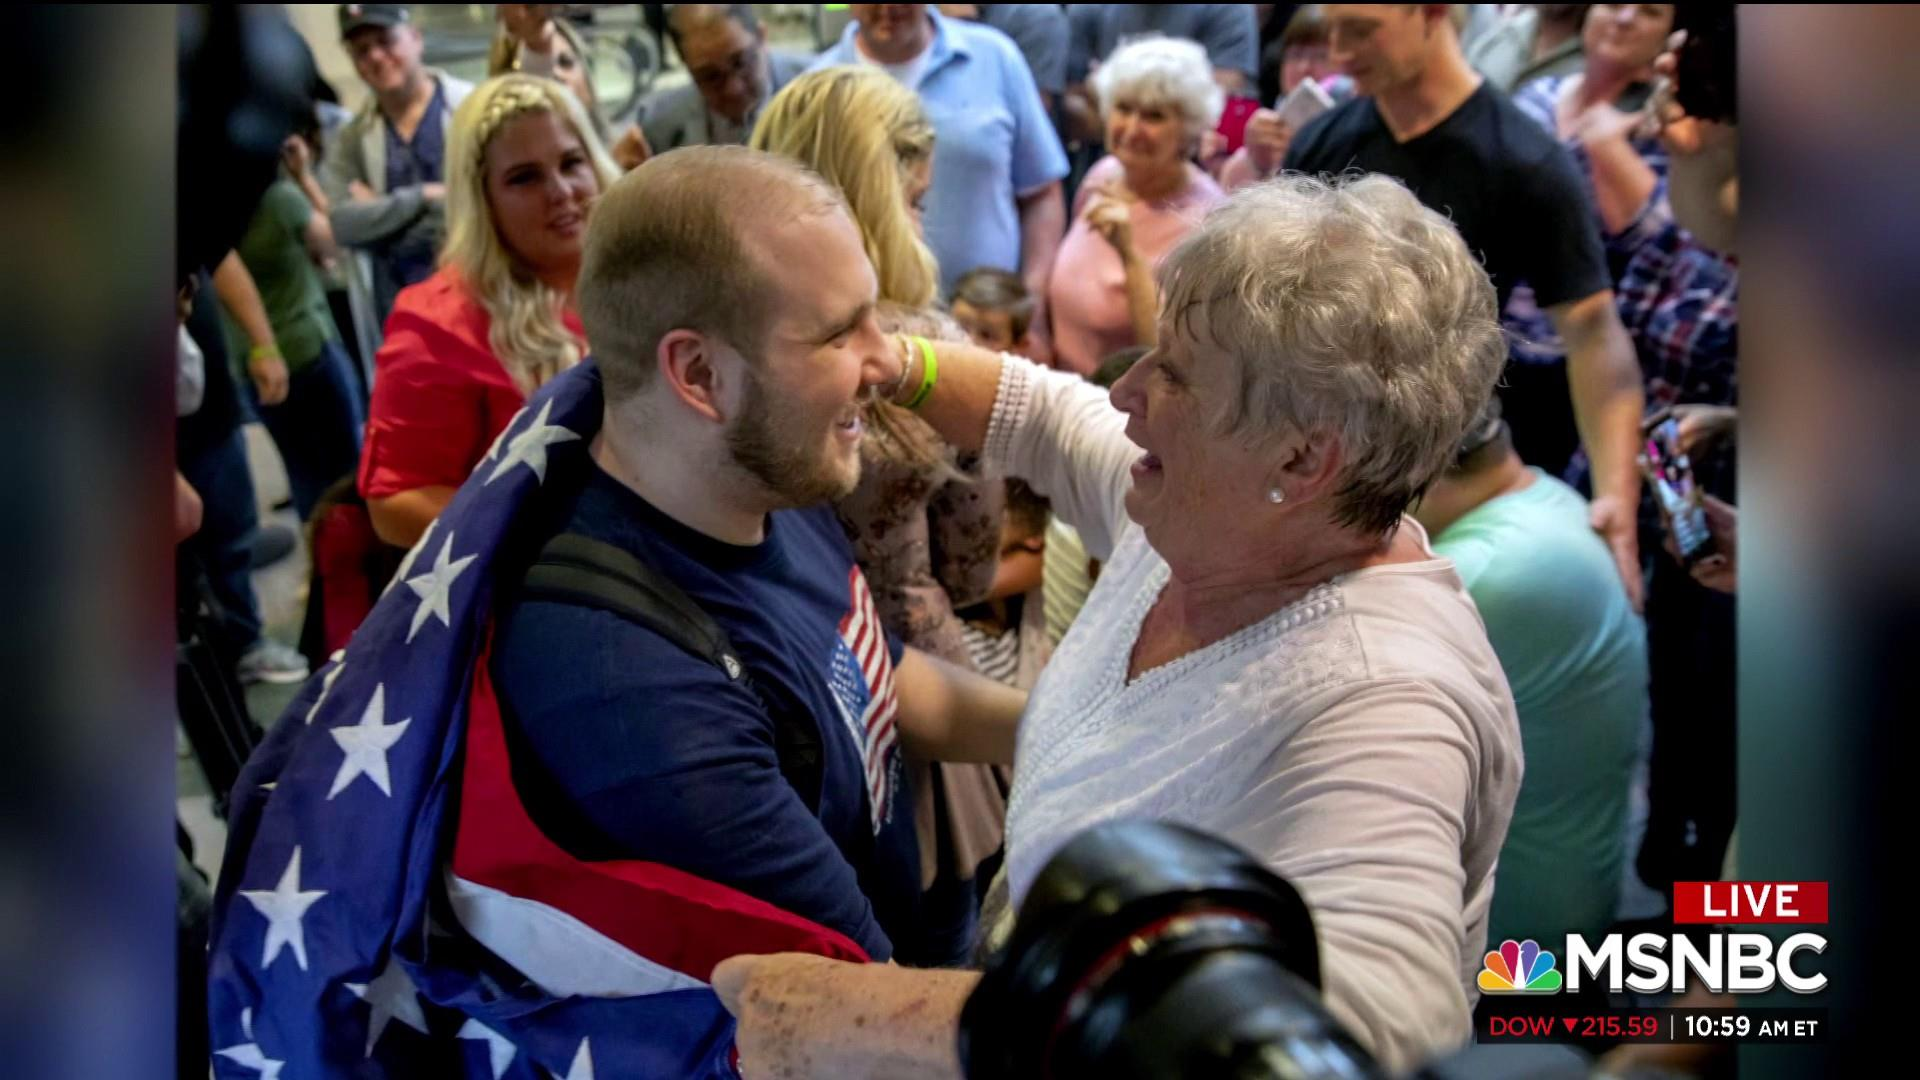 #BIGPICTURE: Josh Holt, American held in Venezuela, returns home